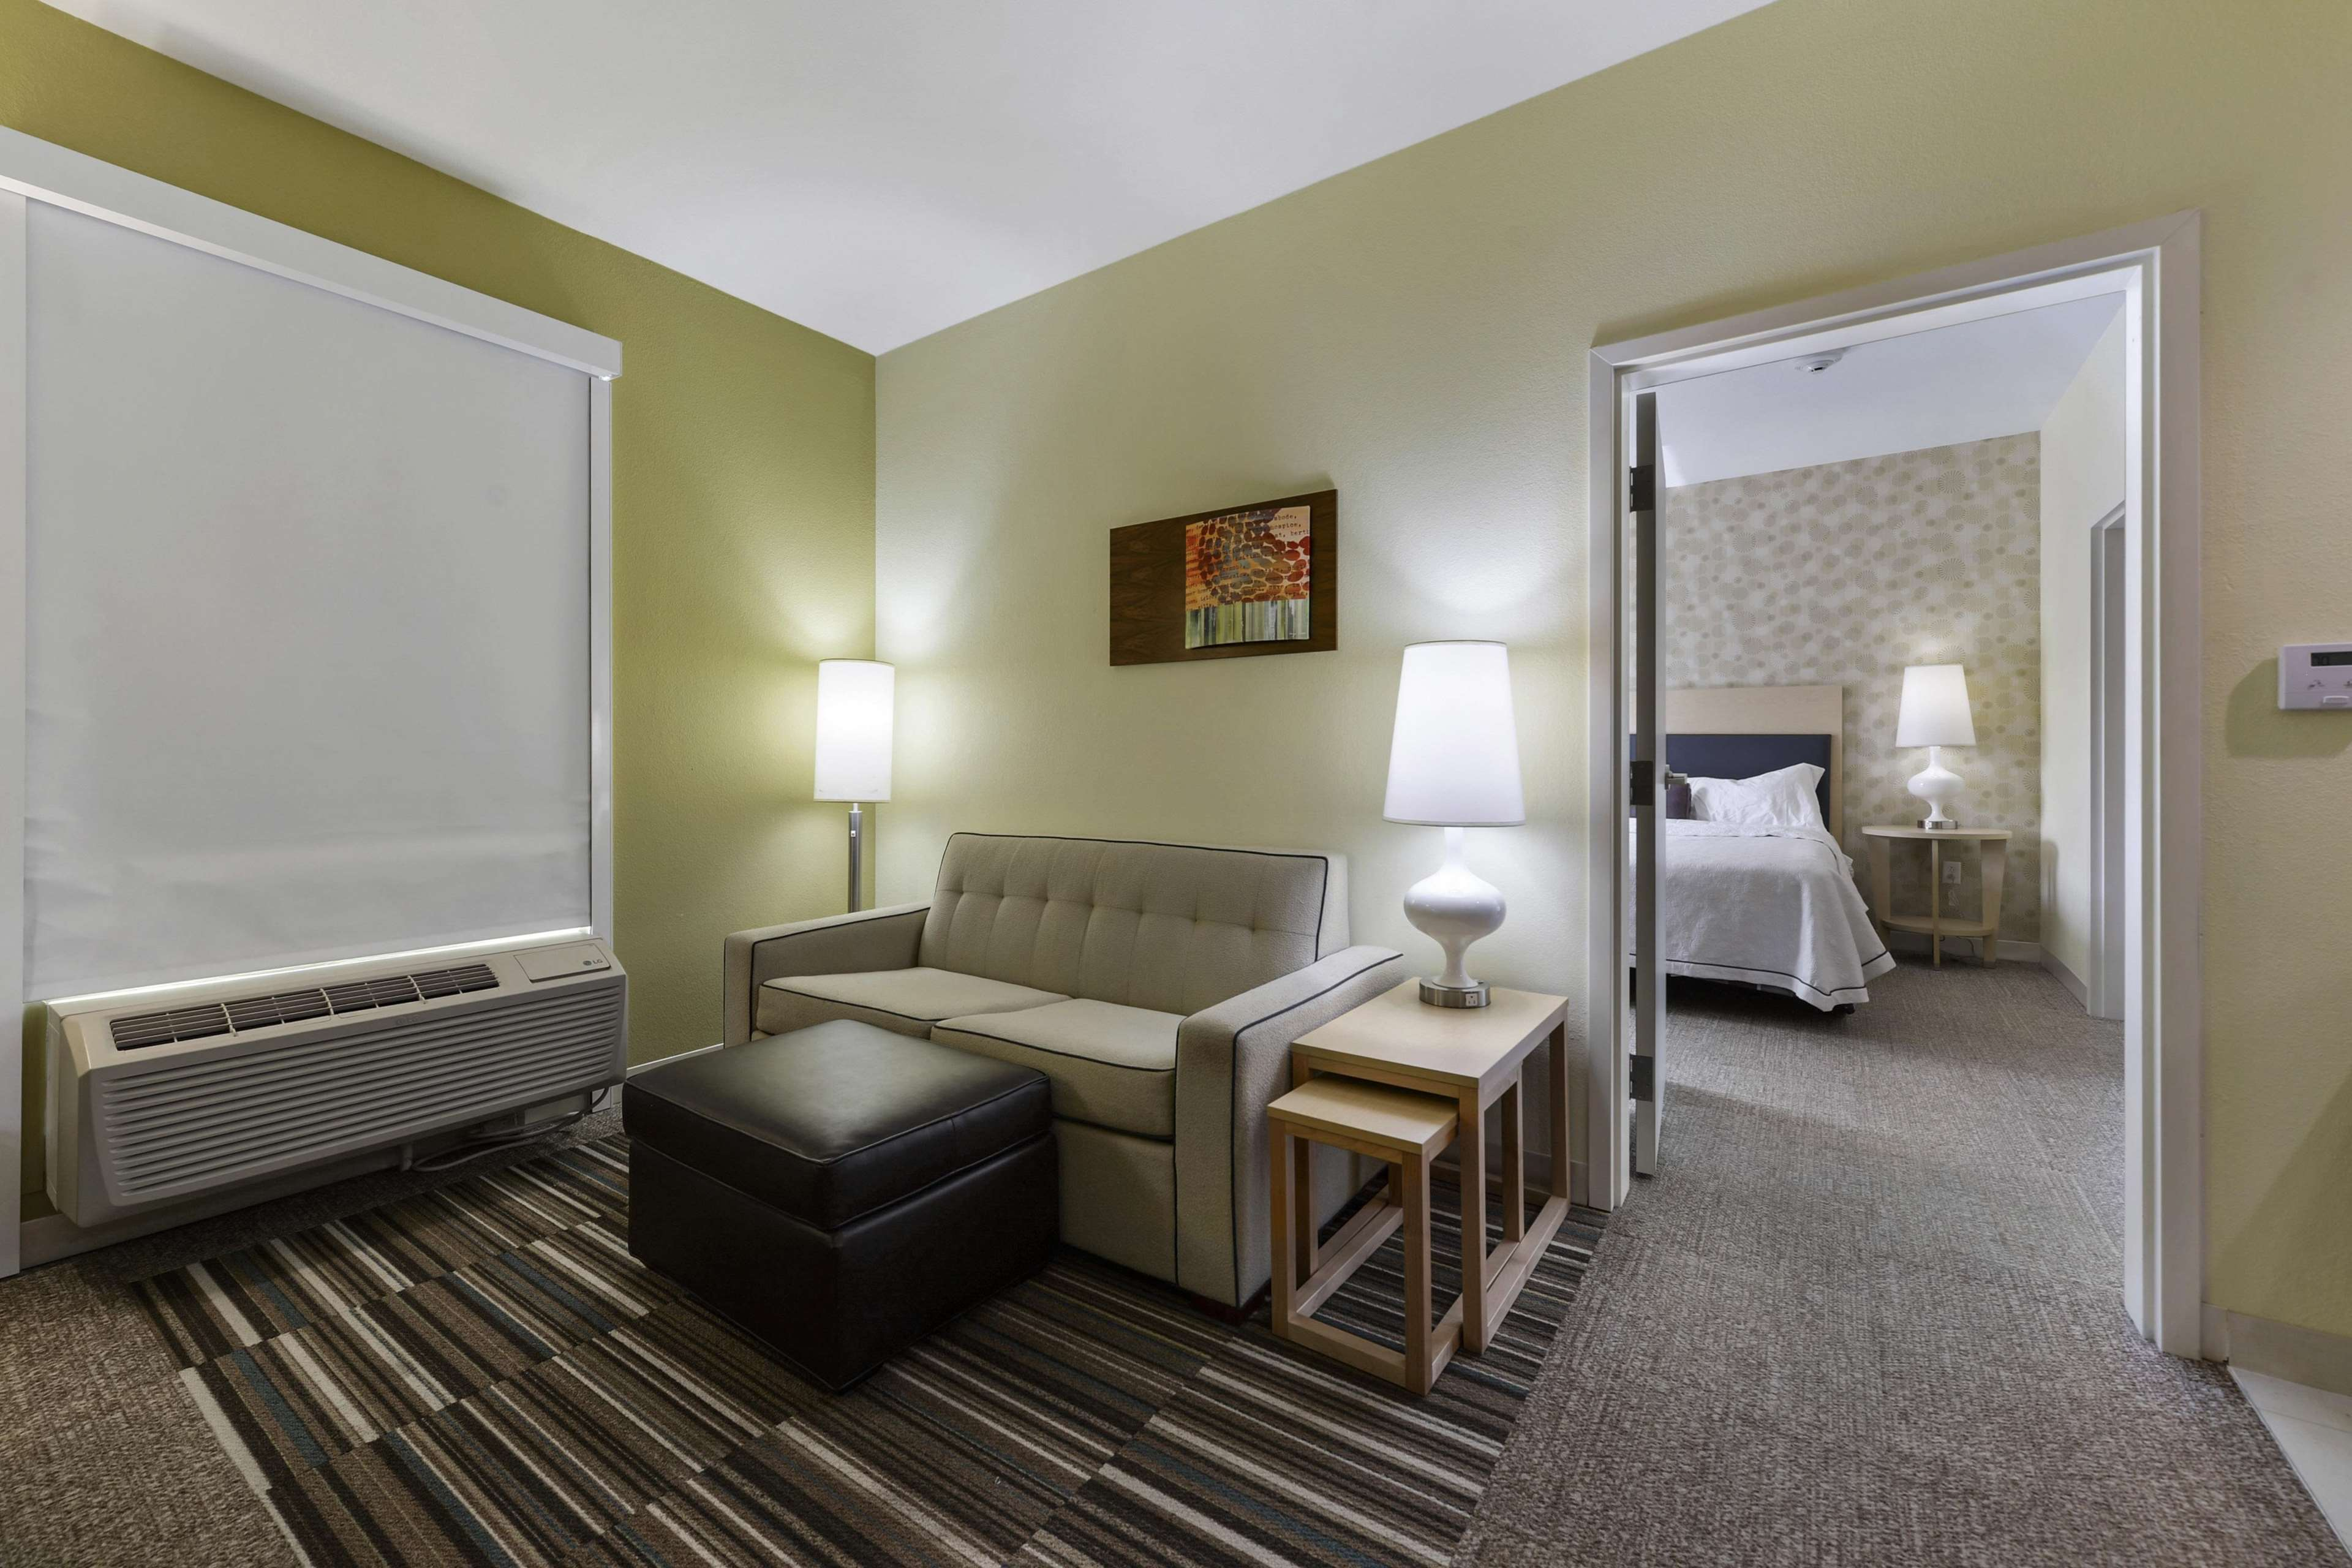 Home2 Suites by Hilton Gulfport I-10 image 33